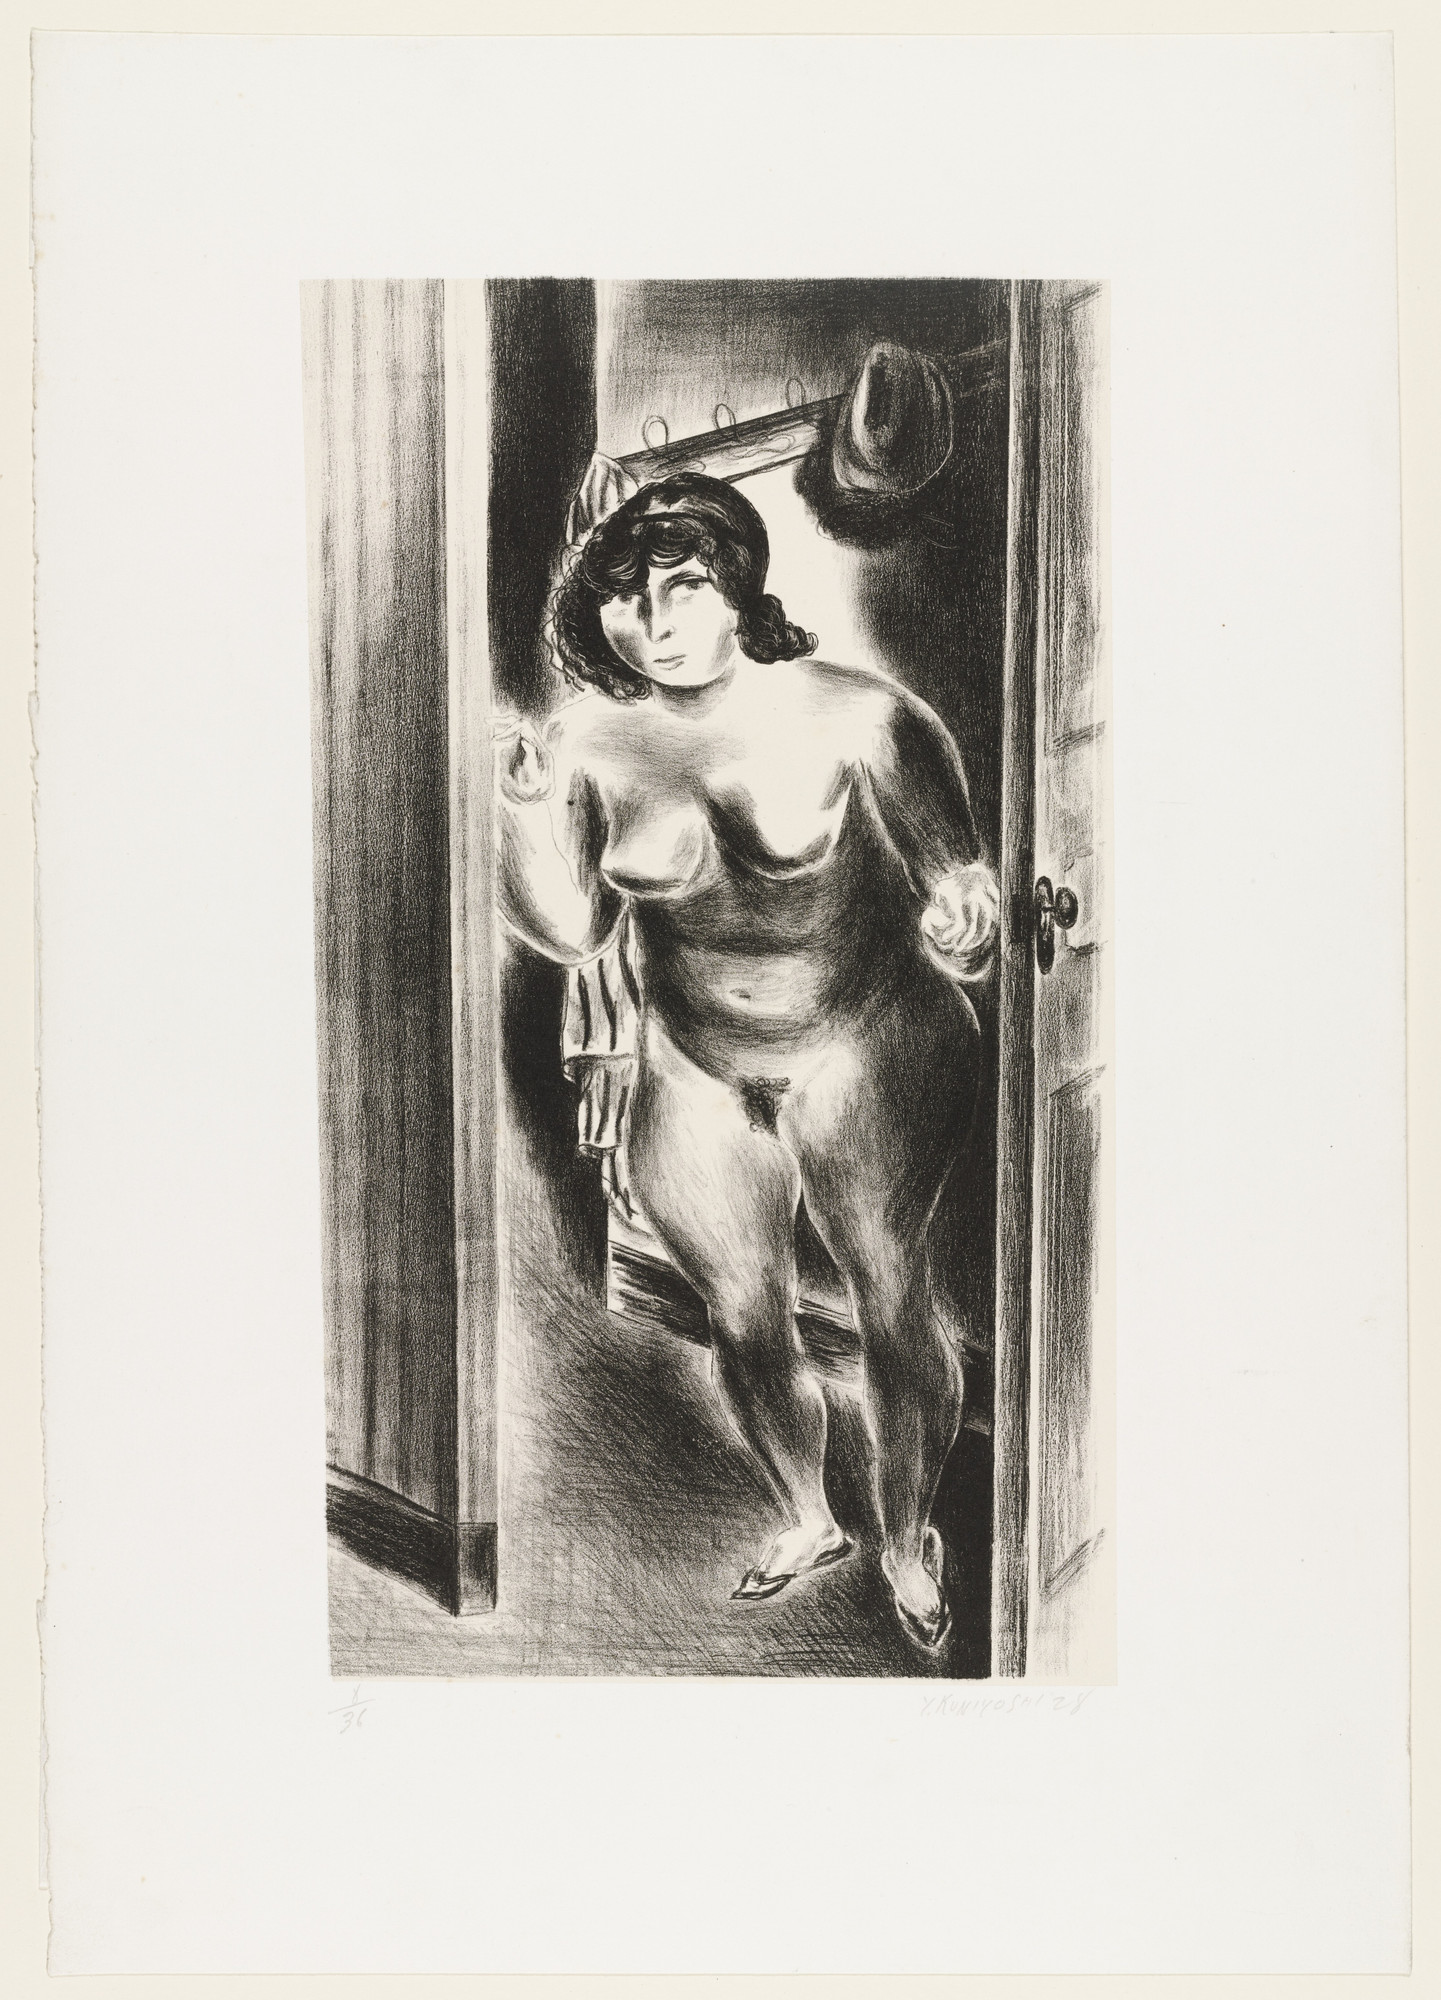 Yasuo Kuniyoshi. Nude at Door. 1928